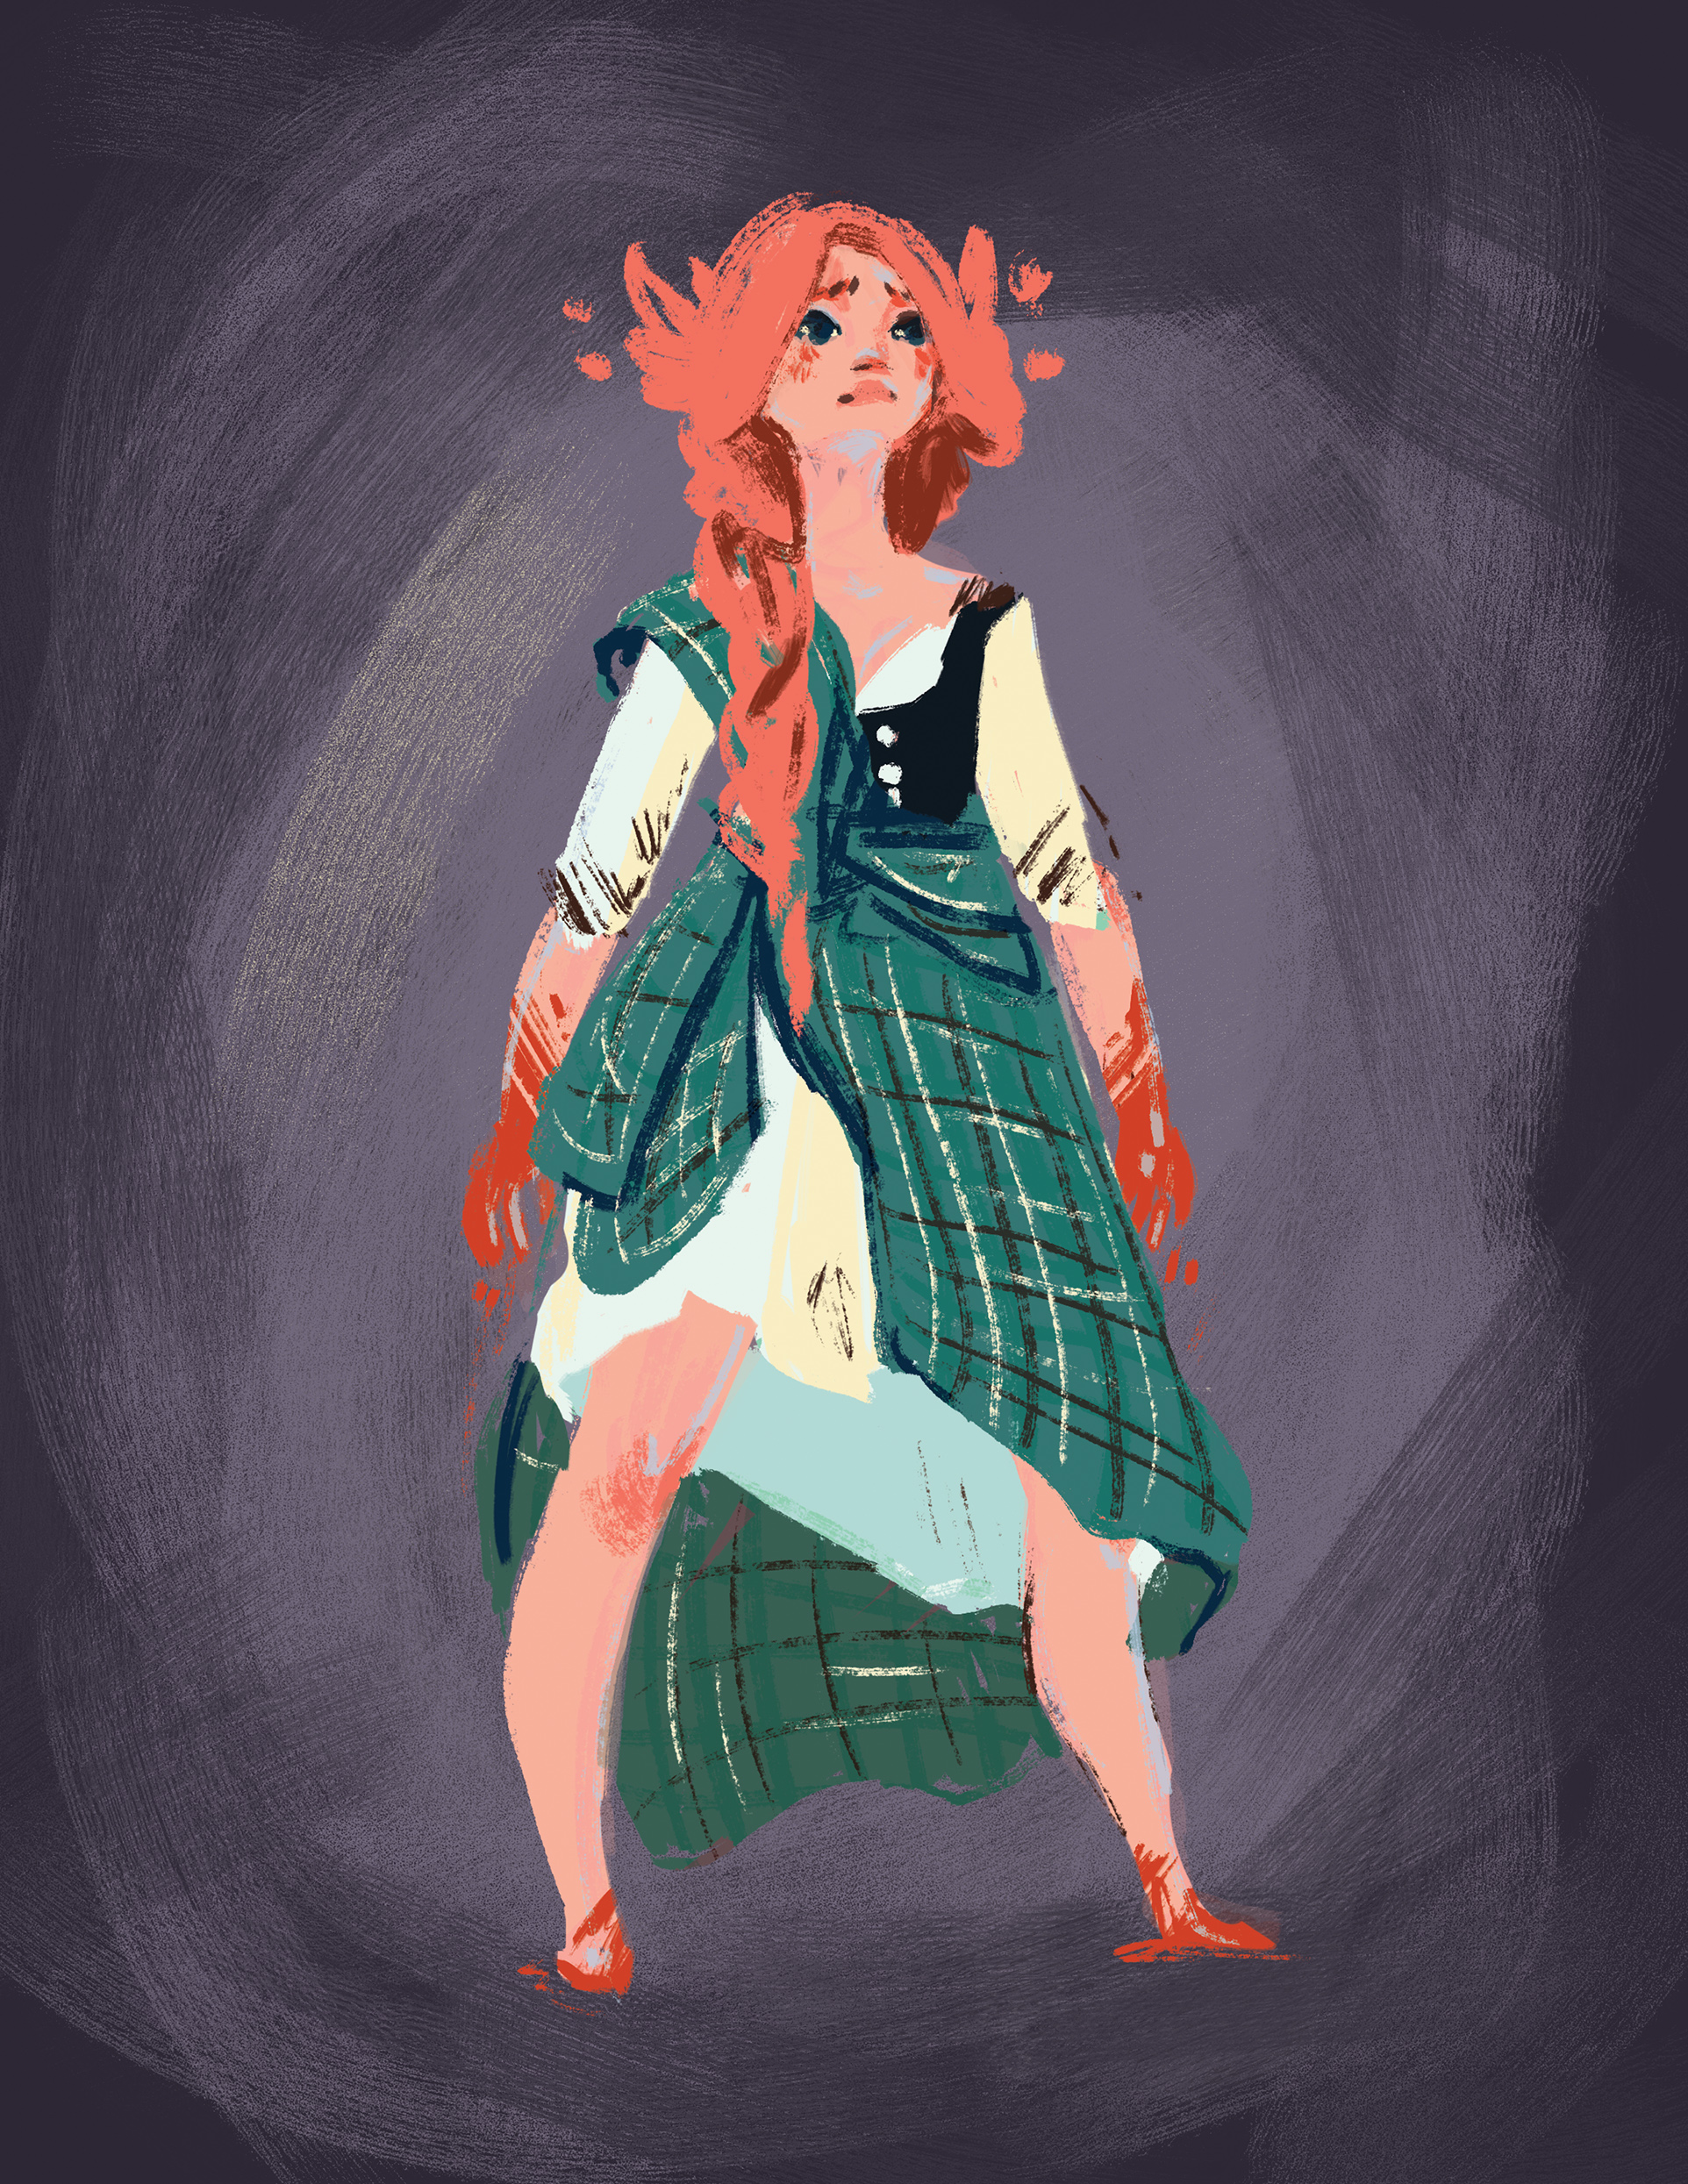 Irish girl character design